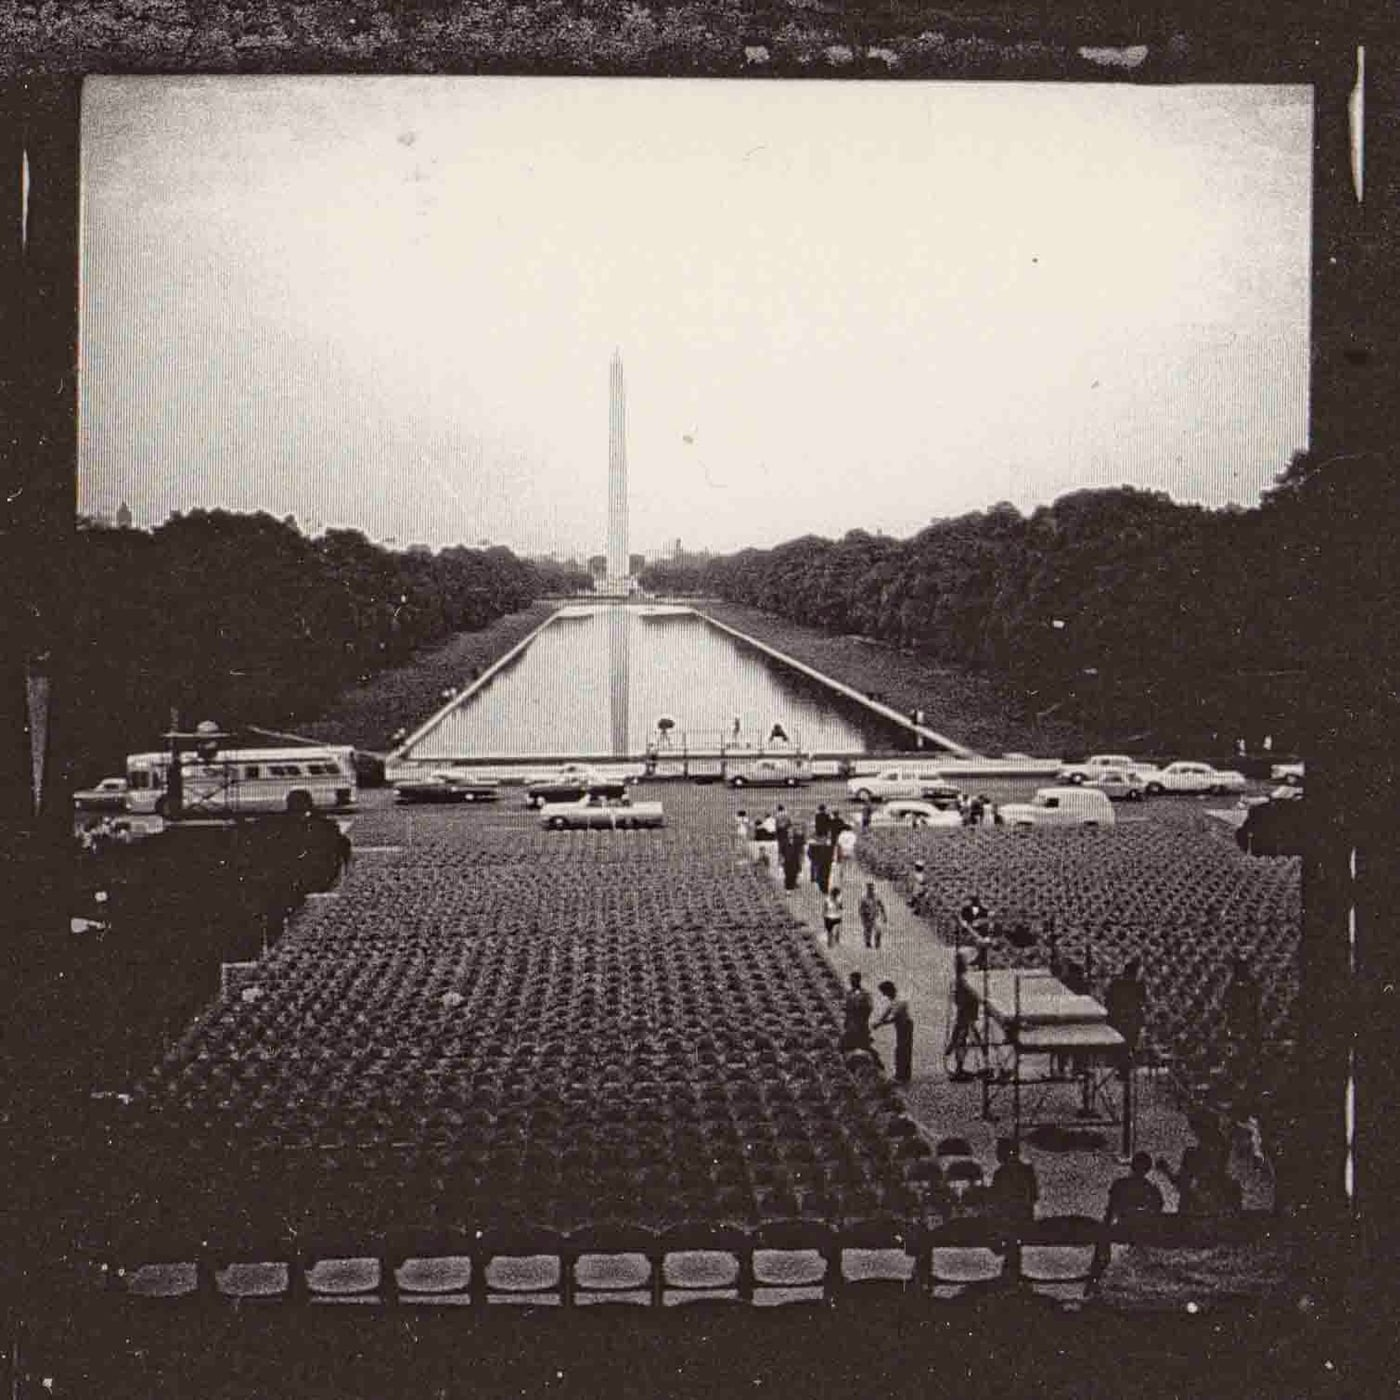 Seating for the March on Washington (Photo by Bob Adamenko)